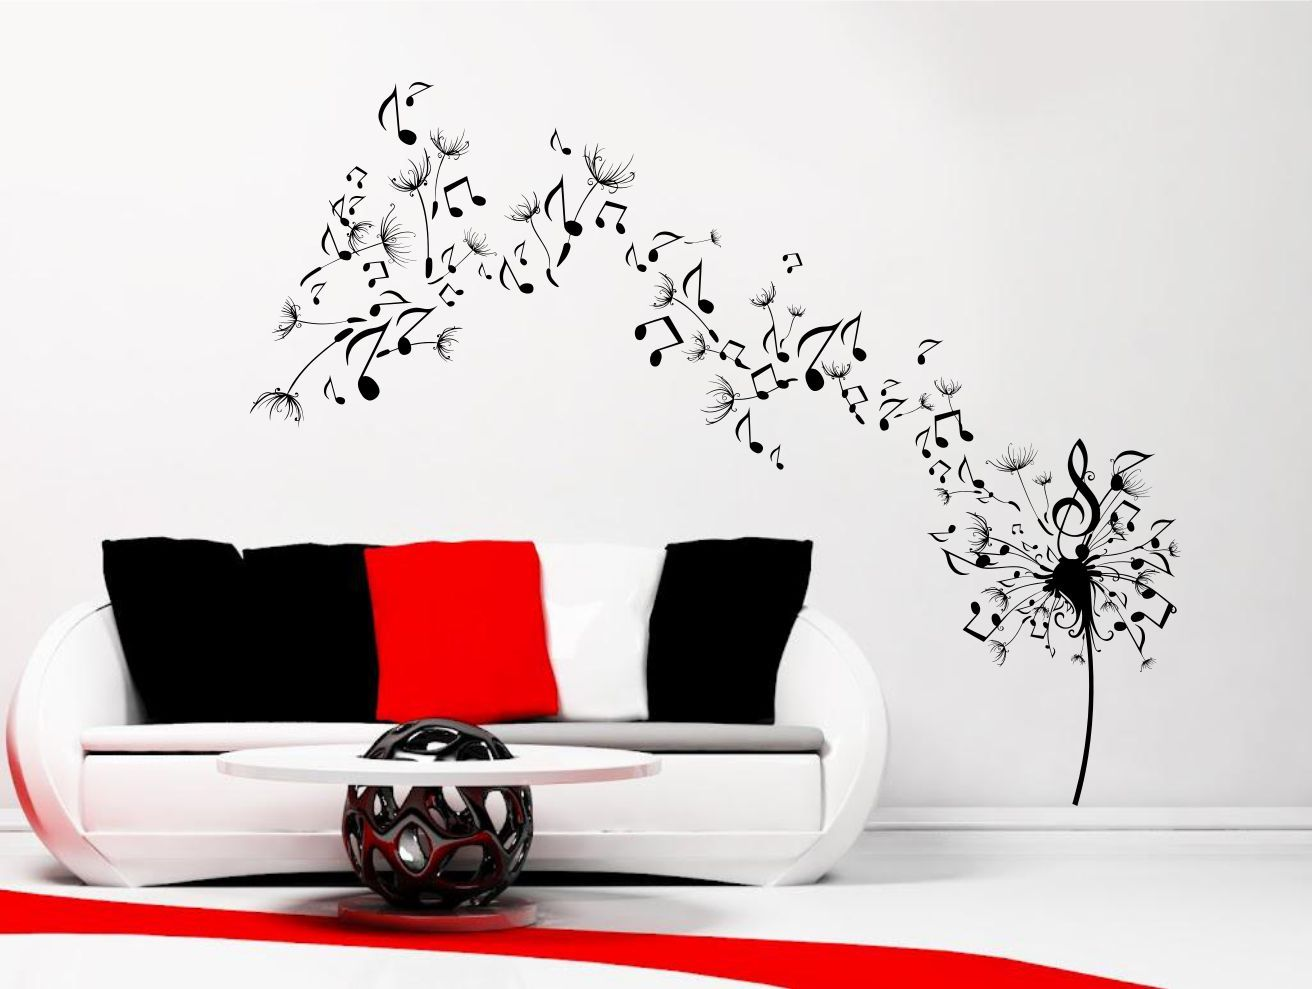 dandelion clock seeds music note wall decal sticker wall decor wall sticker blowing music vinyl record a